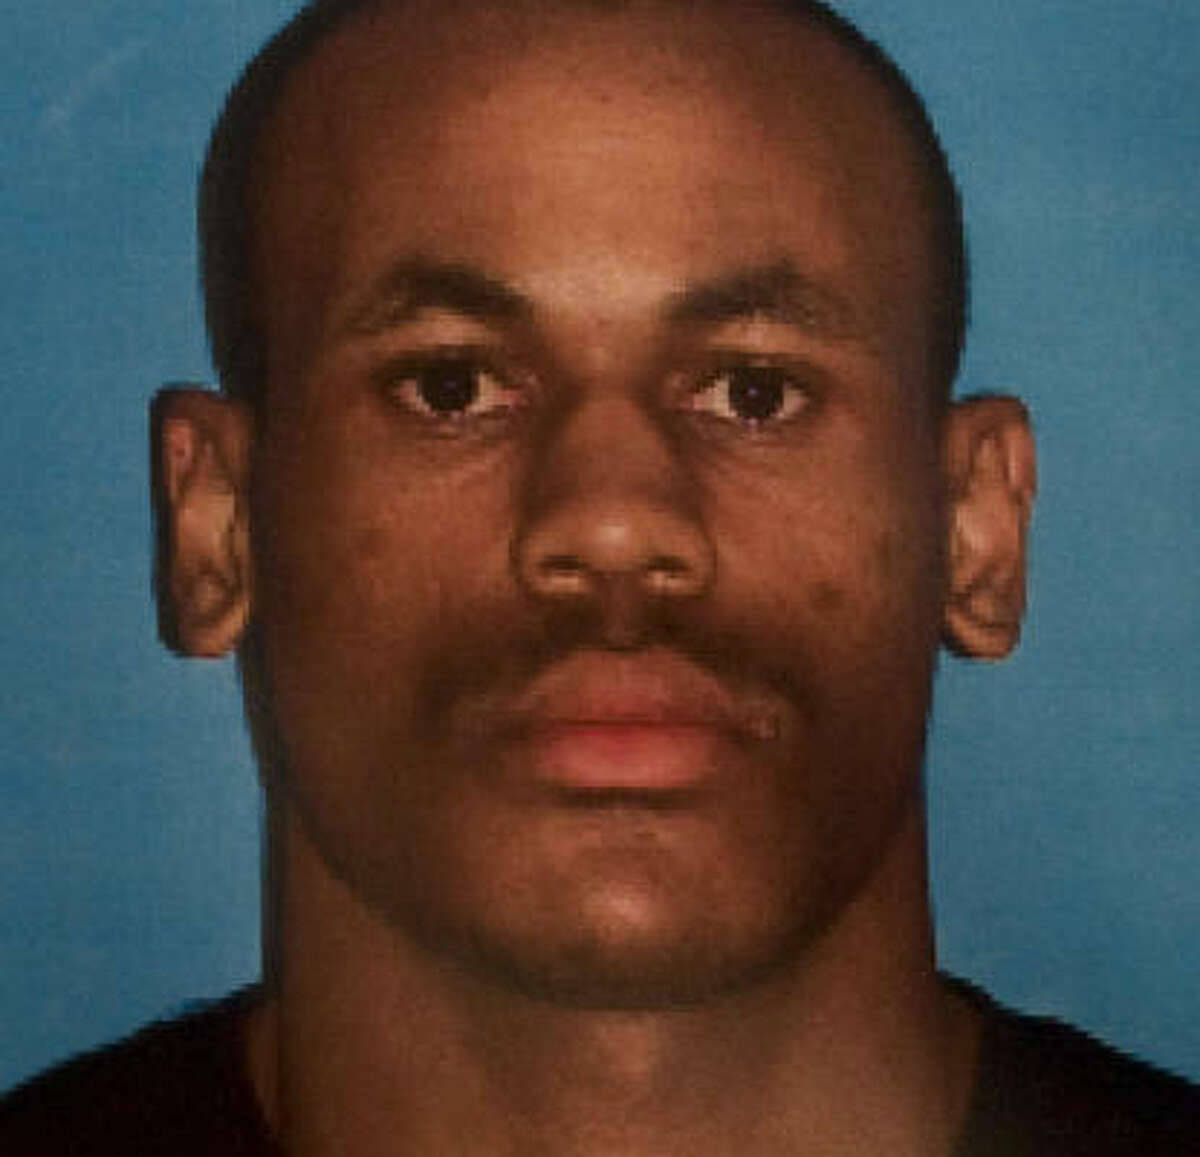 Nicholas-Michael Edwin Jean faces charges in an attempted carjacking in Pearland.